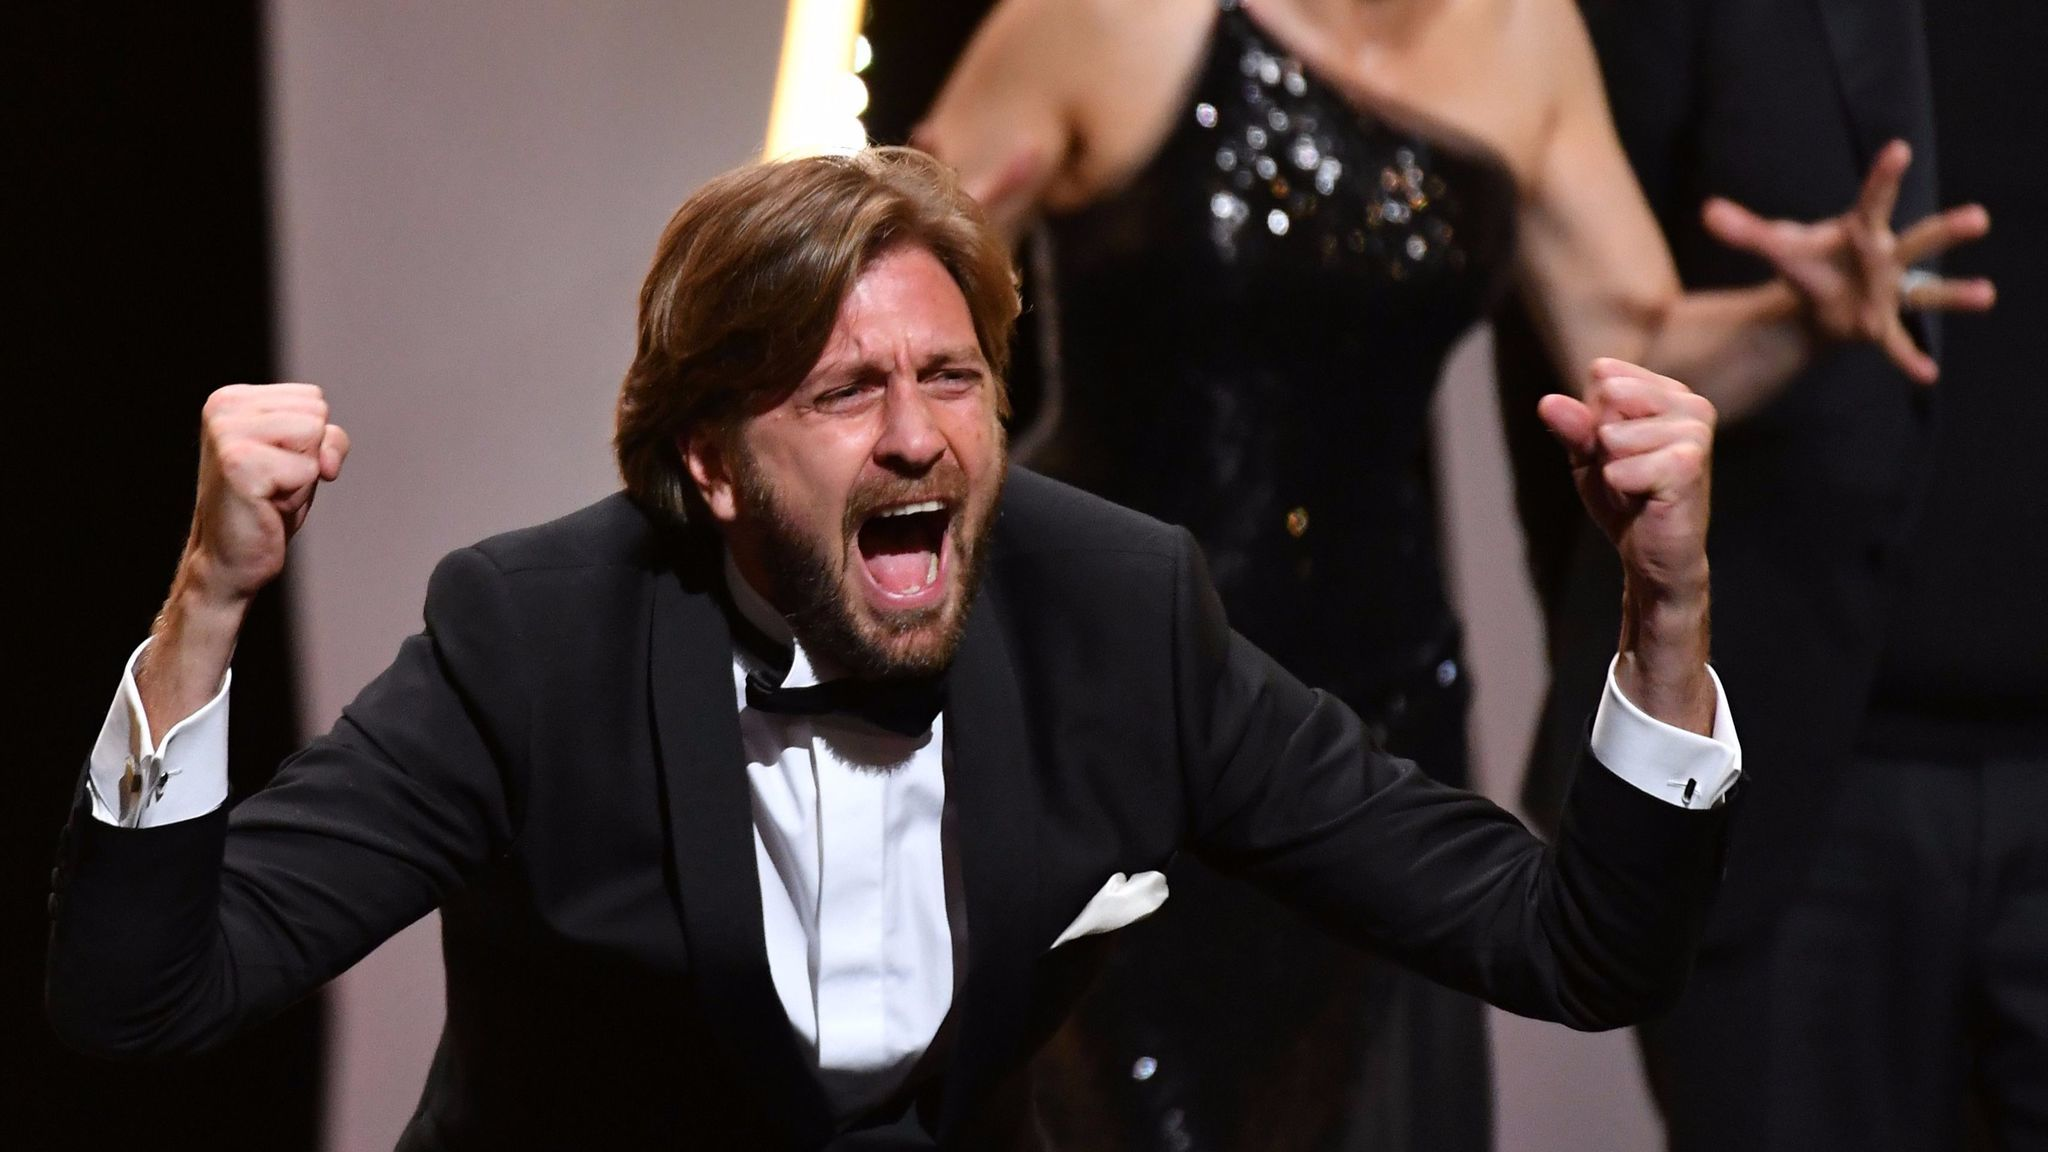 Swedish director Ruben Ostlund reacts on stage after he was awarded with the Palme d'Or for the film 'The Square' during the closing ceremony of the 70th edition of the Cannes Film Festival. (Alberto Pizzoli / AFP / Getty Images)